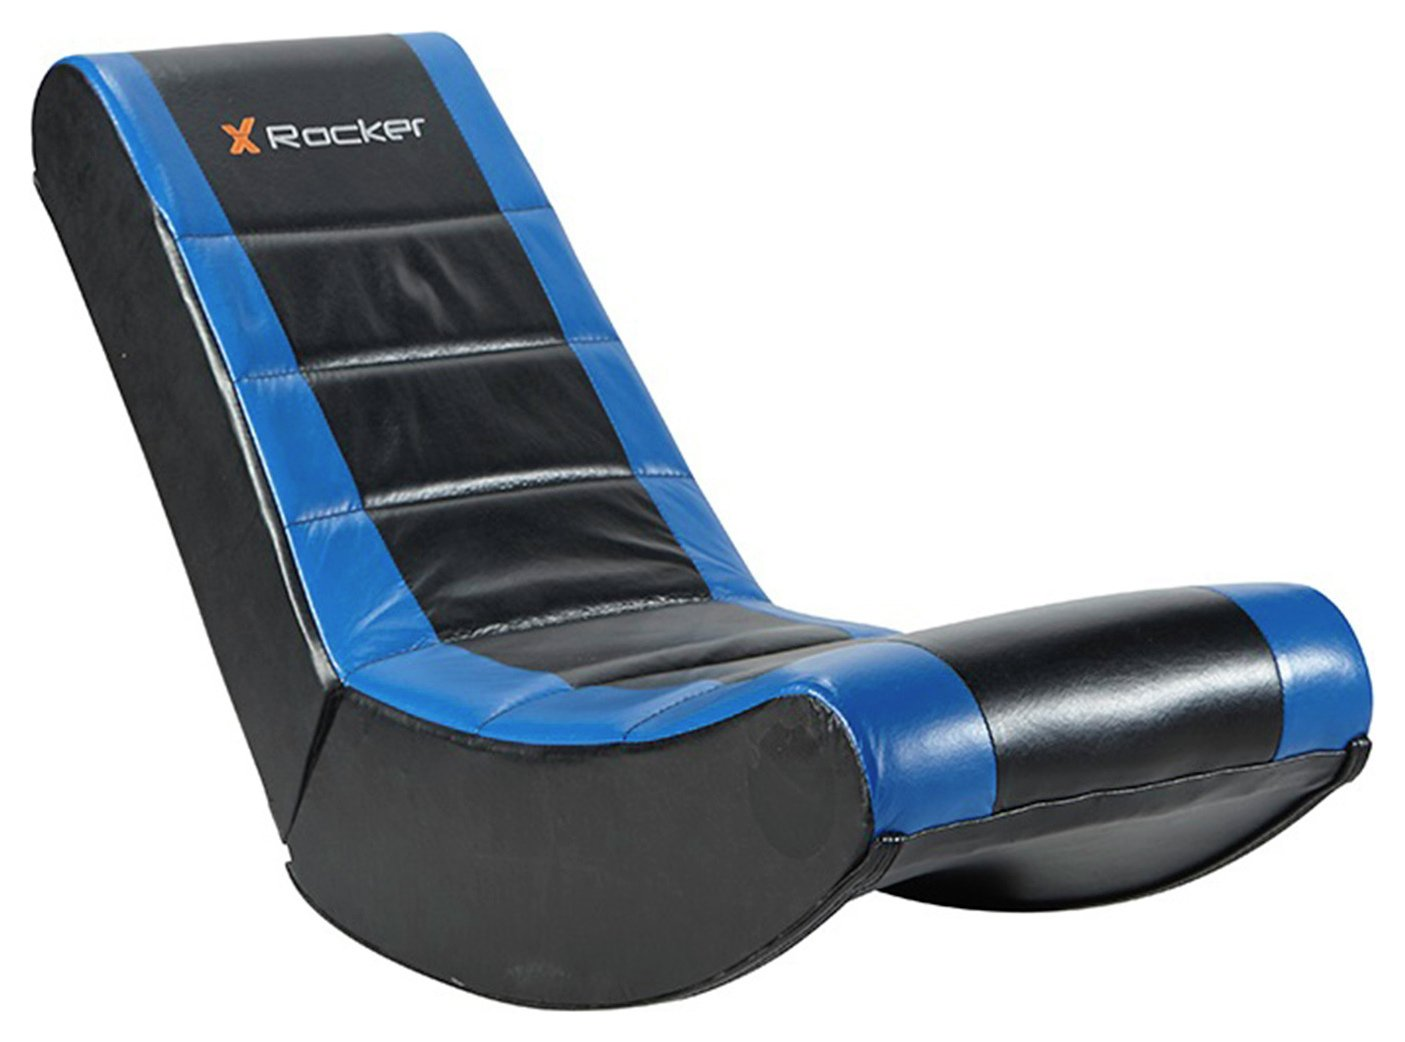 Relax and check out the great offers on Gaming Chairs